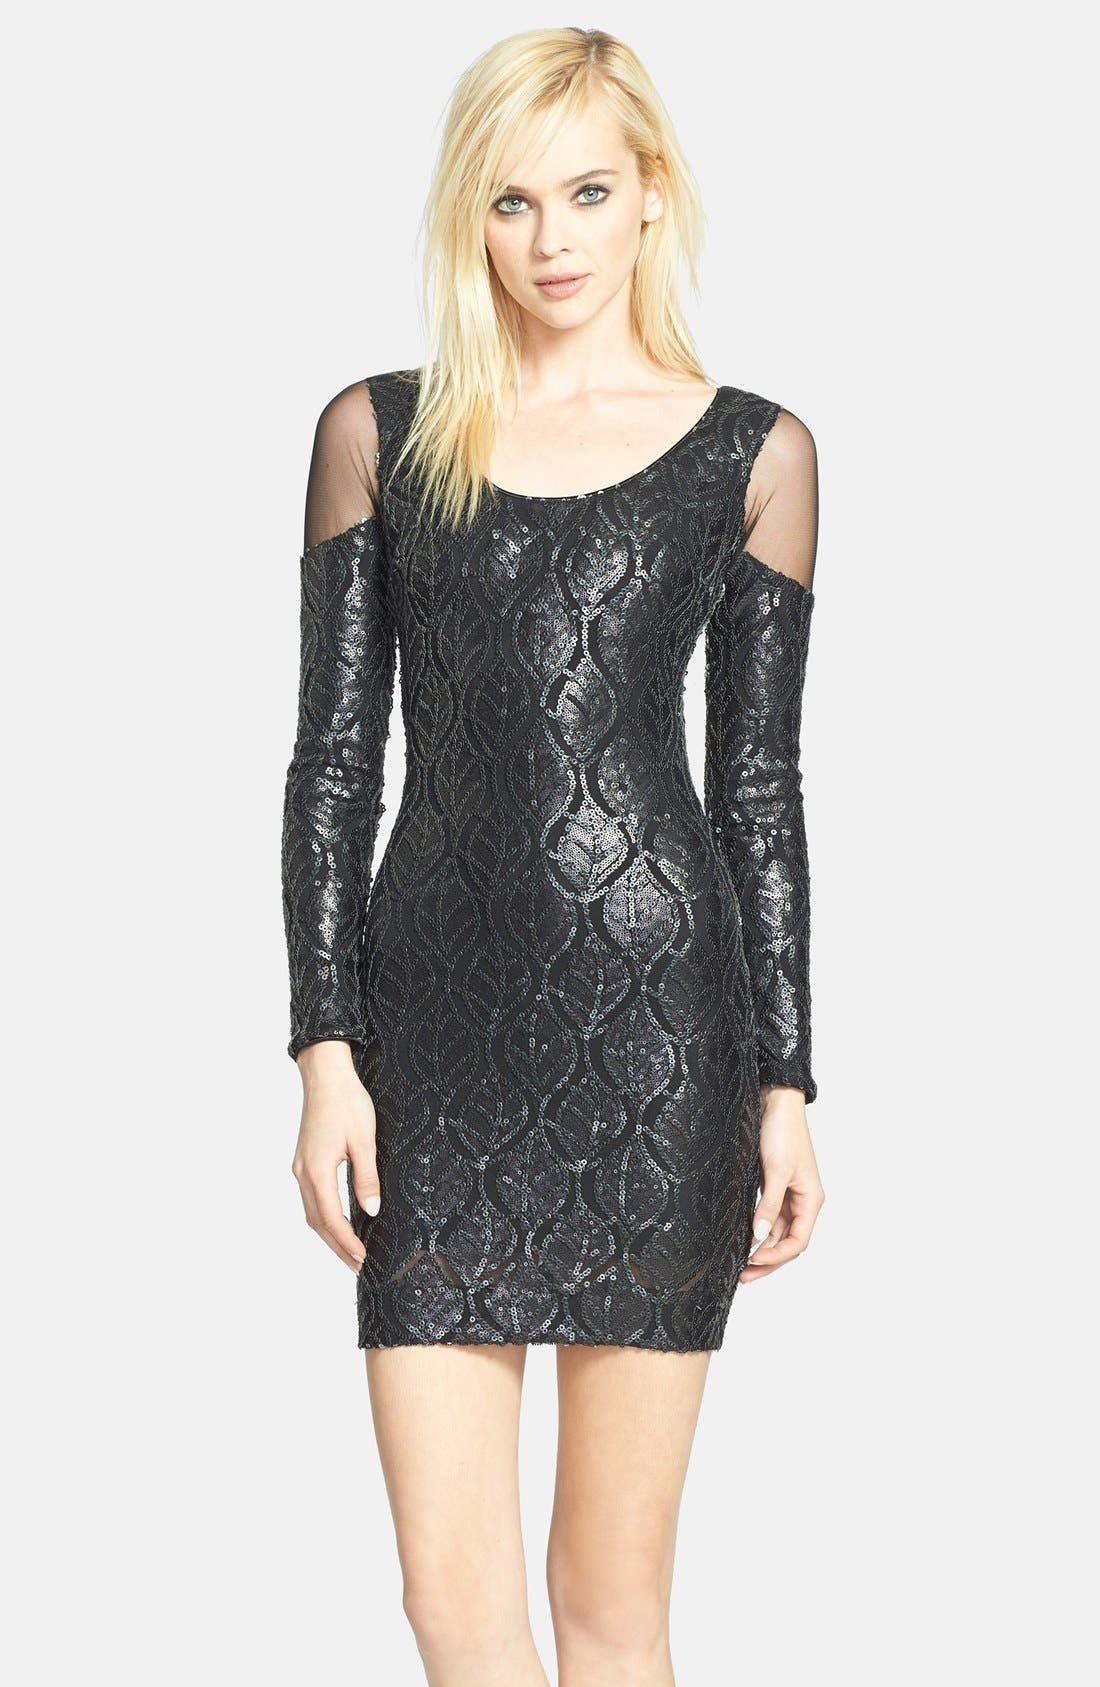 Alternate Image 1 Selected - Dress the Population 'Jaden' Faux Leather Sequin Body-Con Dress